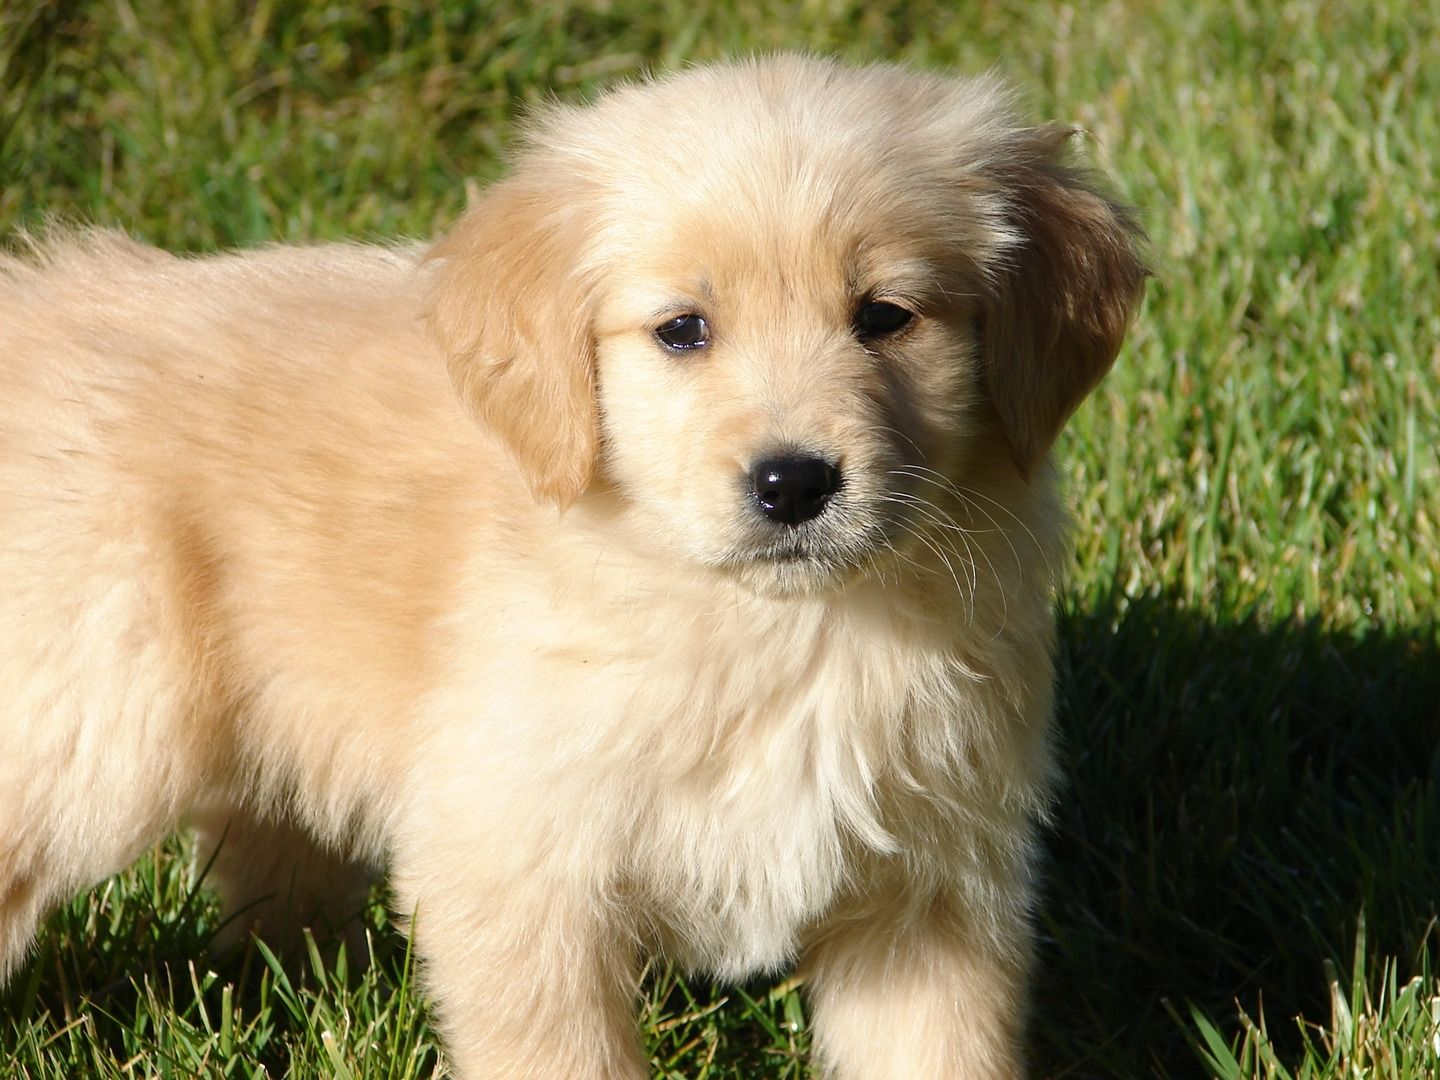 Golden Retriever Puppies For Sale, Golden Retriever Dogs